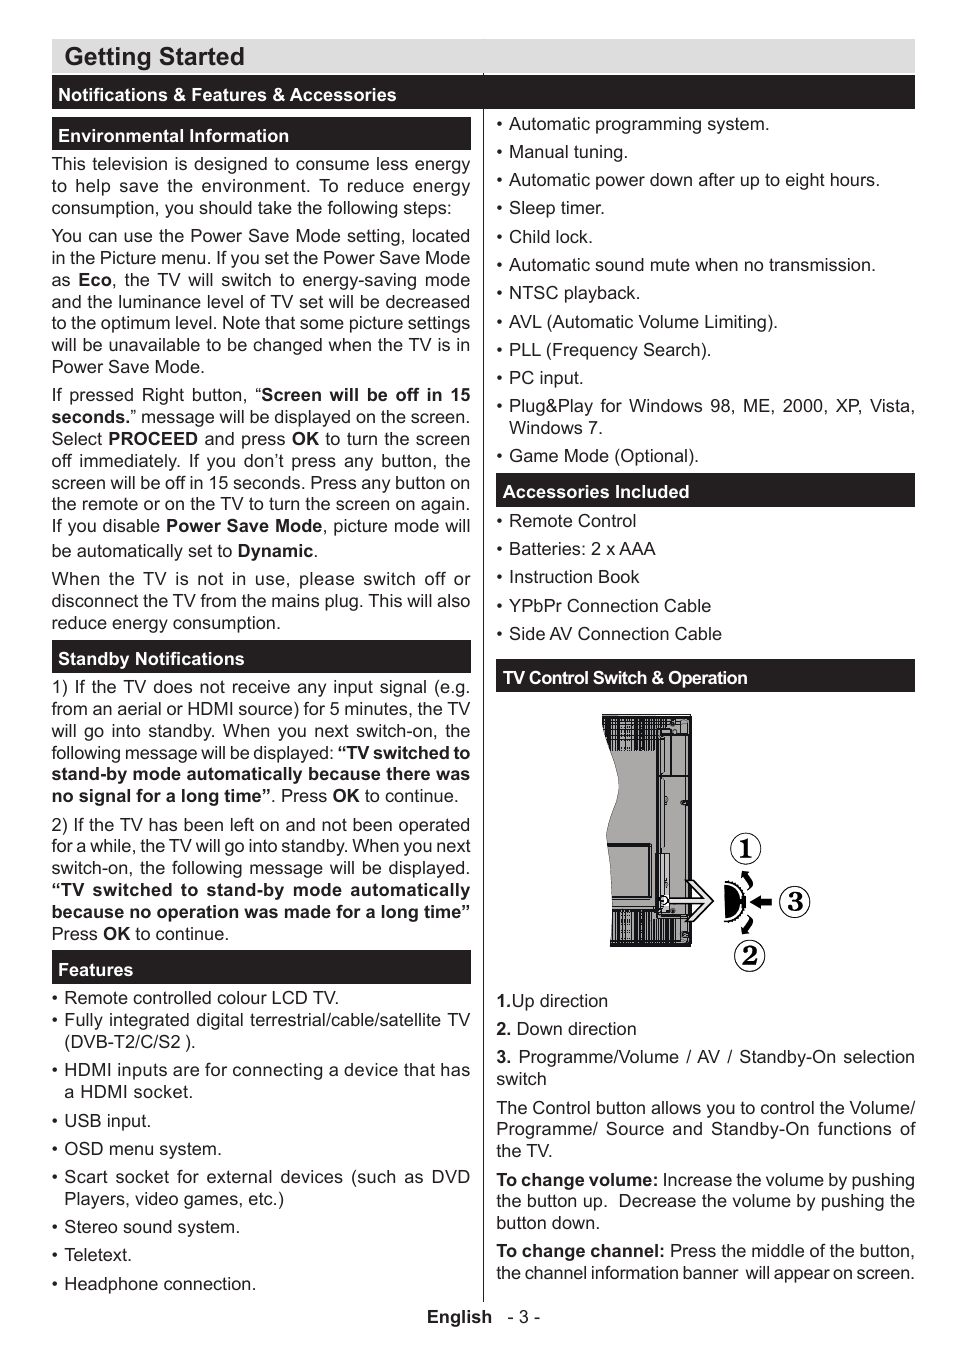 Getting started | Panasonic TX32AW304 User Manual | Page 4 / 89